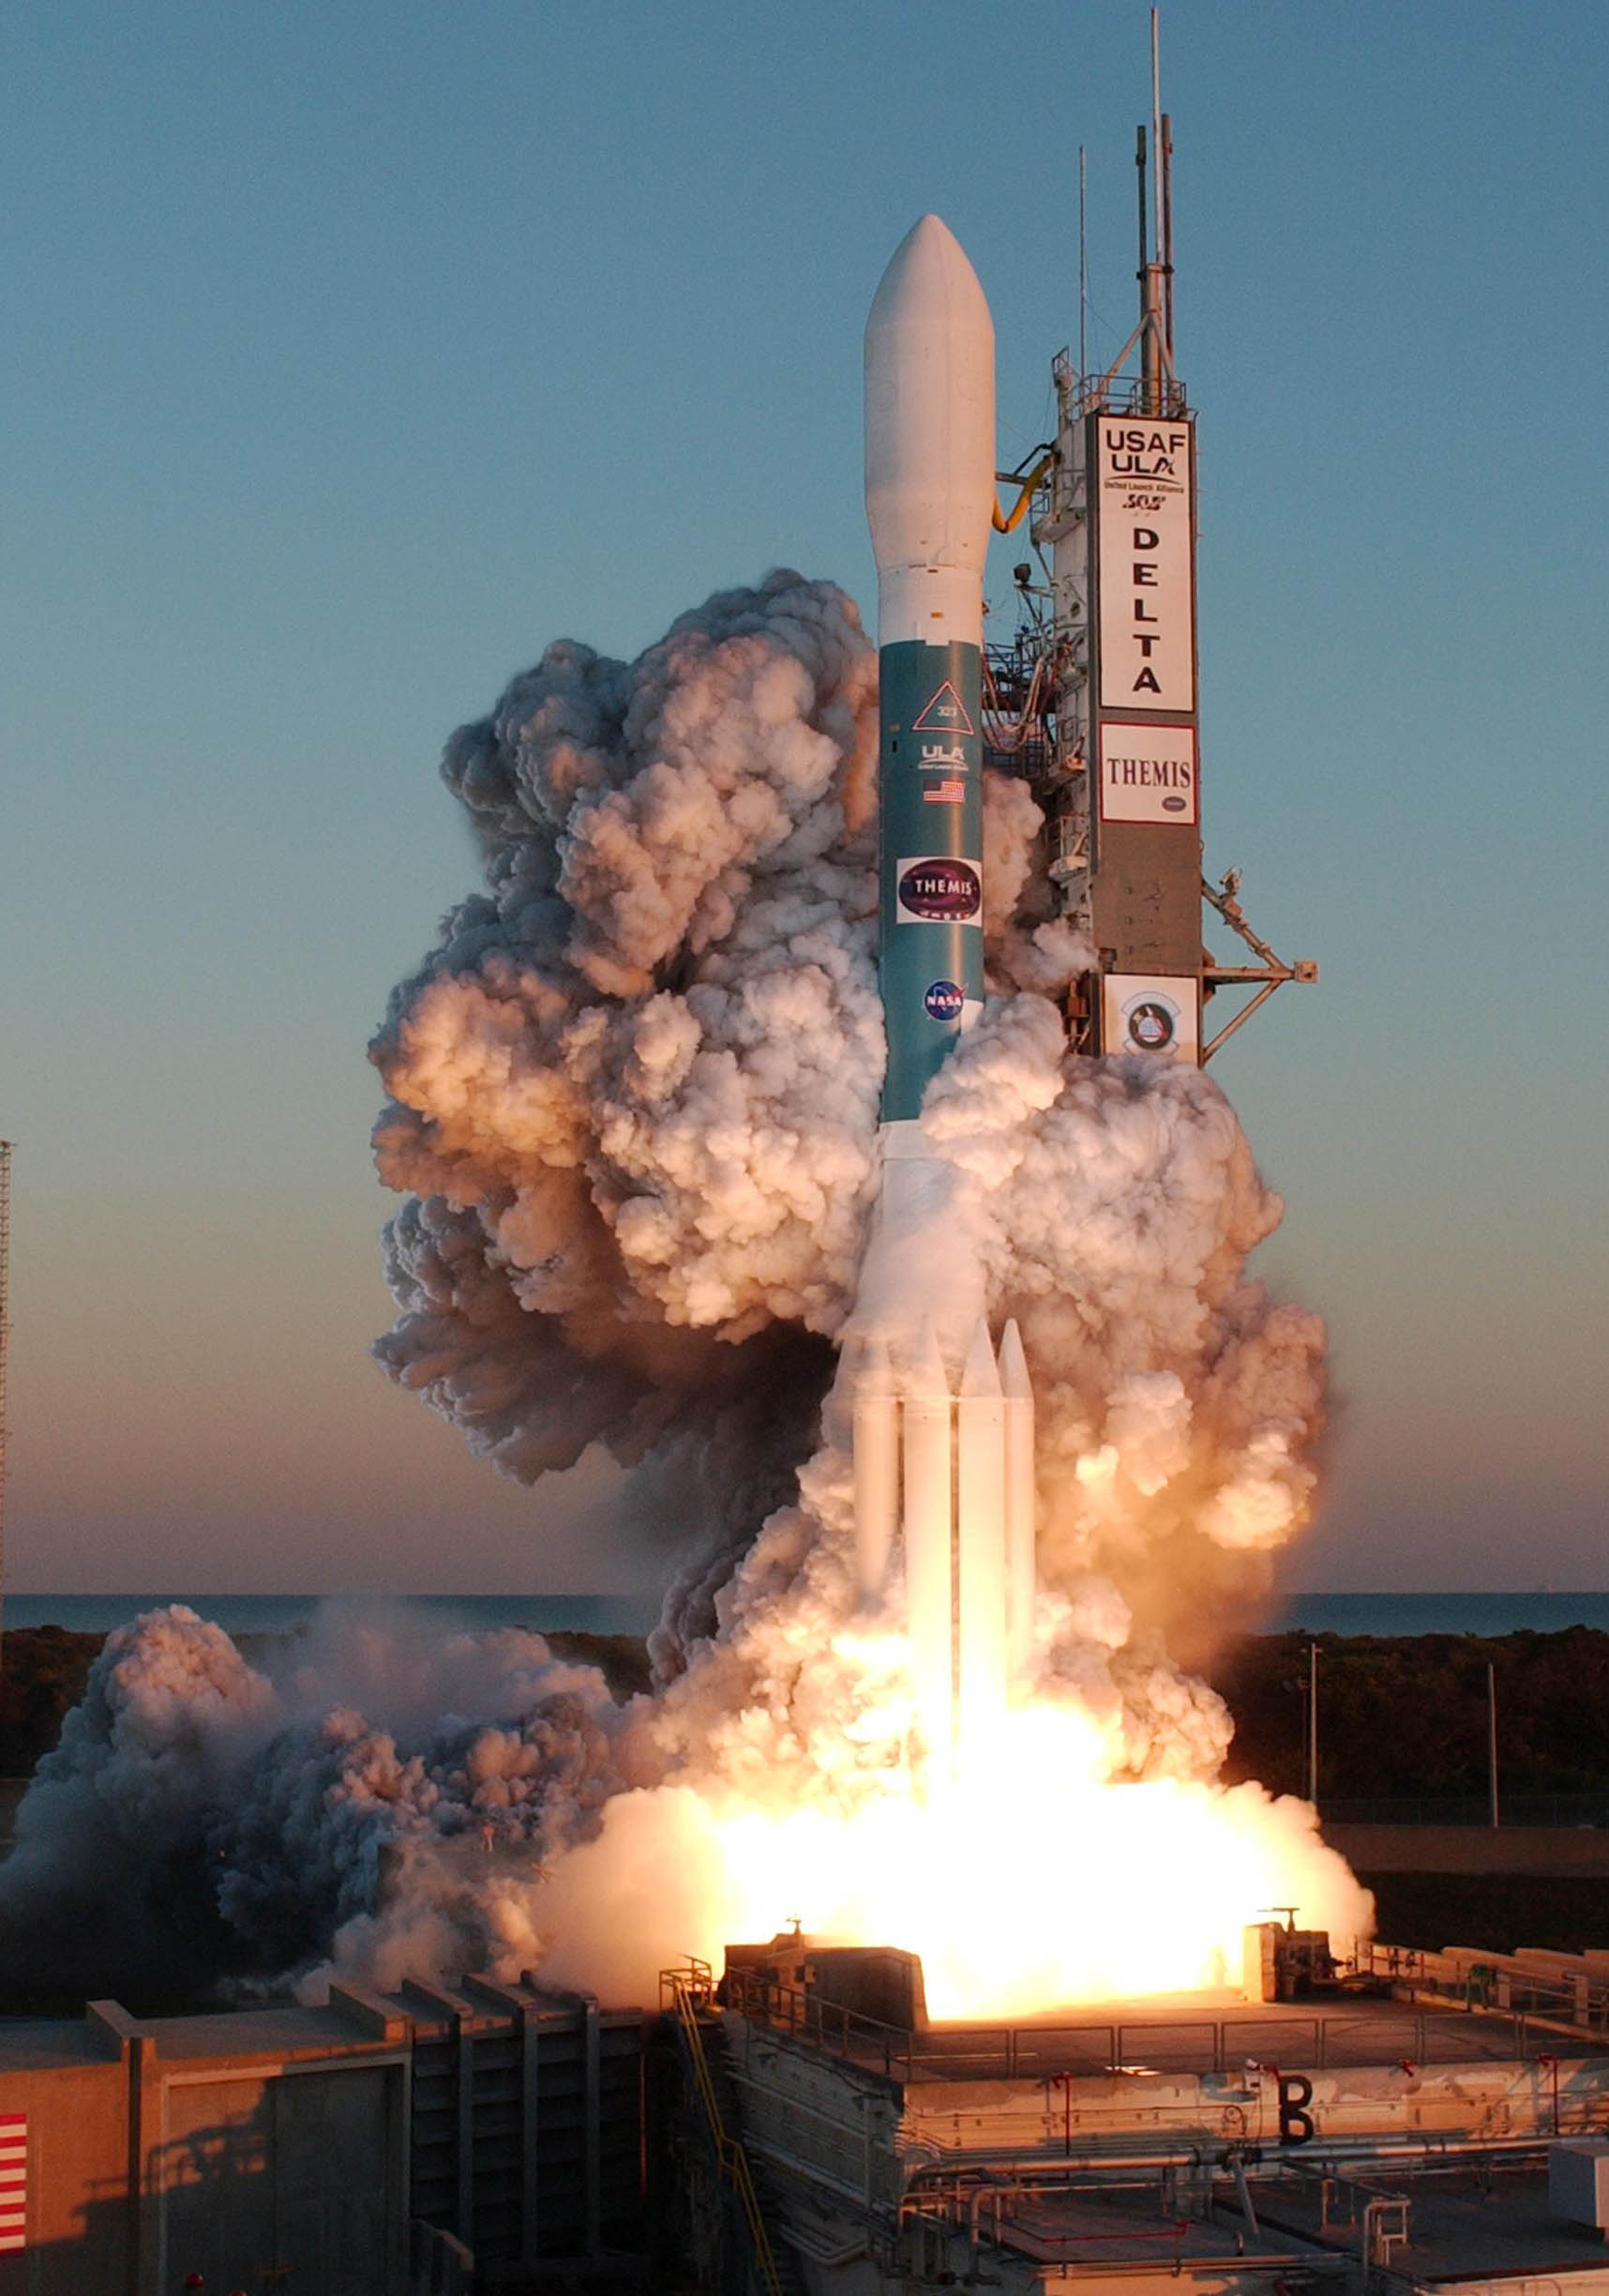 """The 45th Space Wing here supported the Feb. 17 launch of a Delta II booster carrying five National Aeronautics and Space Administration probes on a mission called """"THEMIS,"""" which will study auroral substorms, an avalanche of magnetic energy powered by the solar wind that intensifies the northern and southern lights. (Courtesy photo)"""